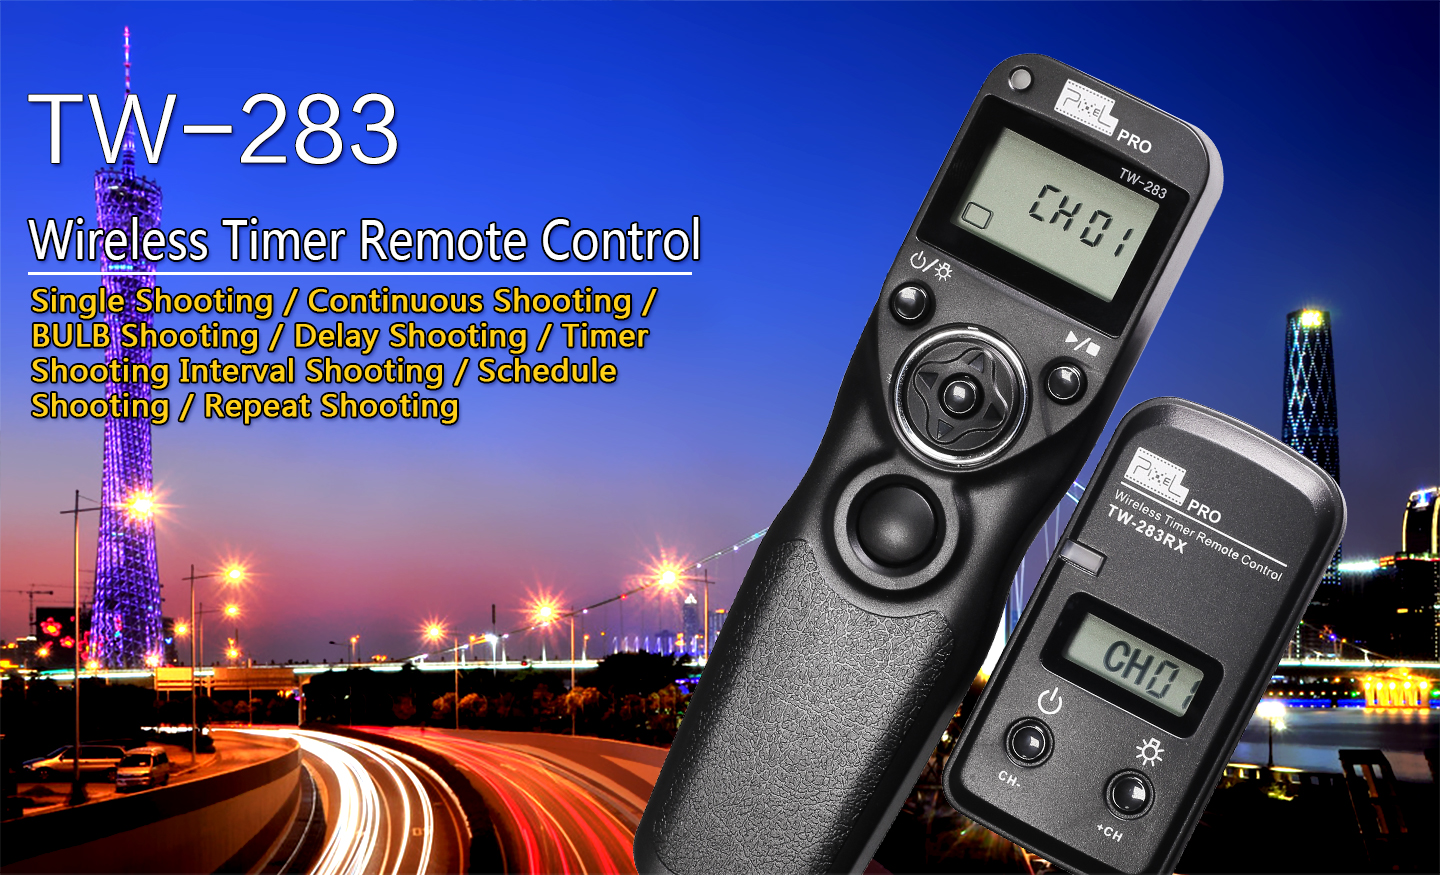 TW-283 Wireless Timer Remote Control